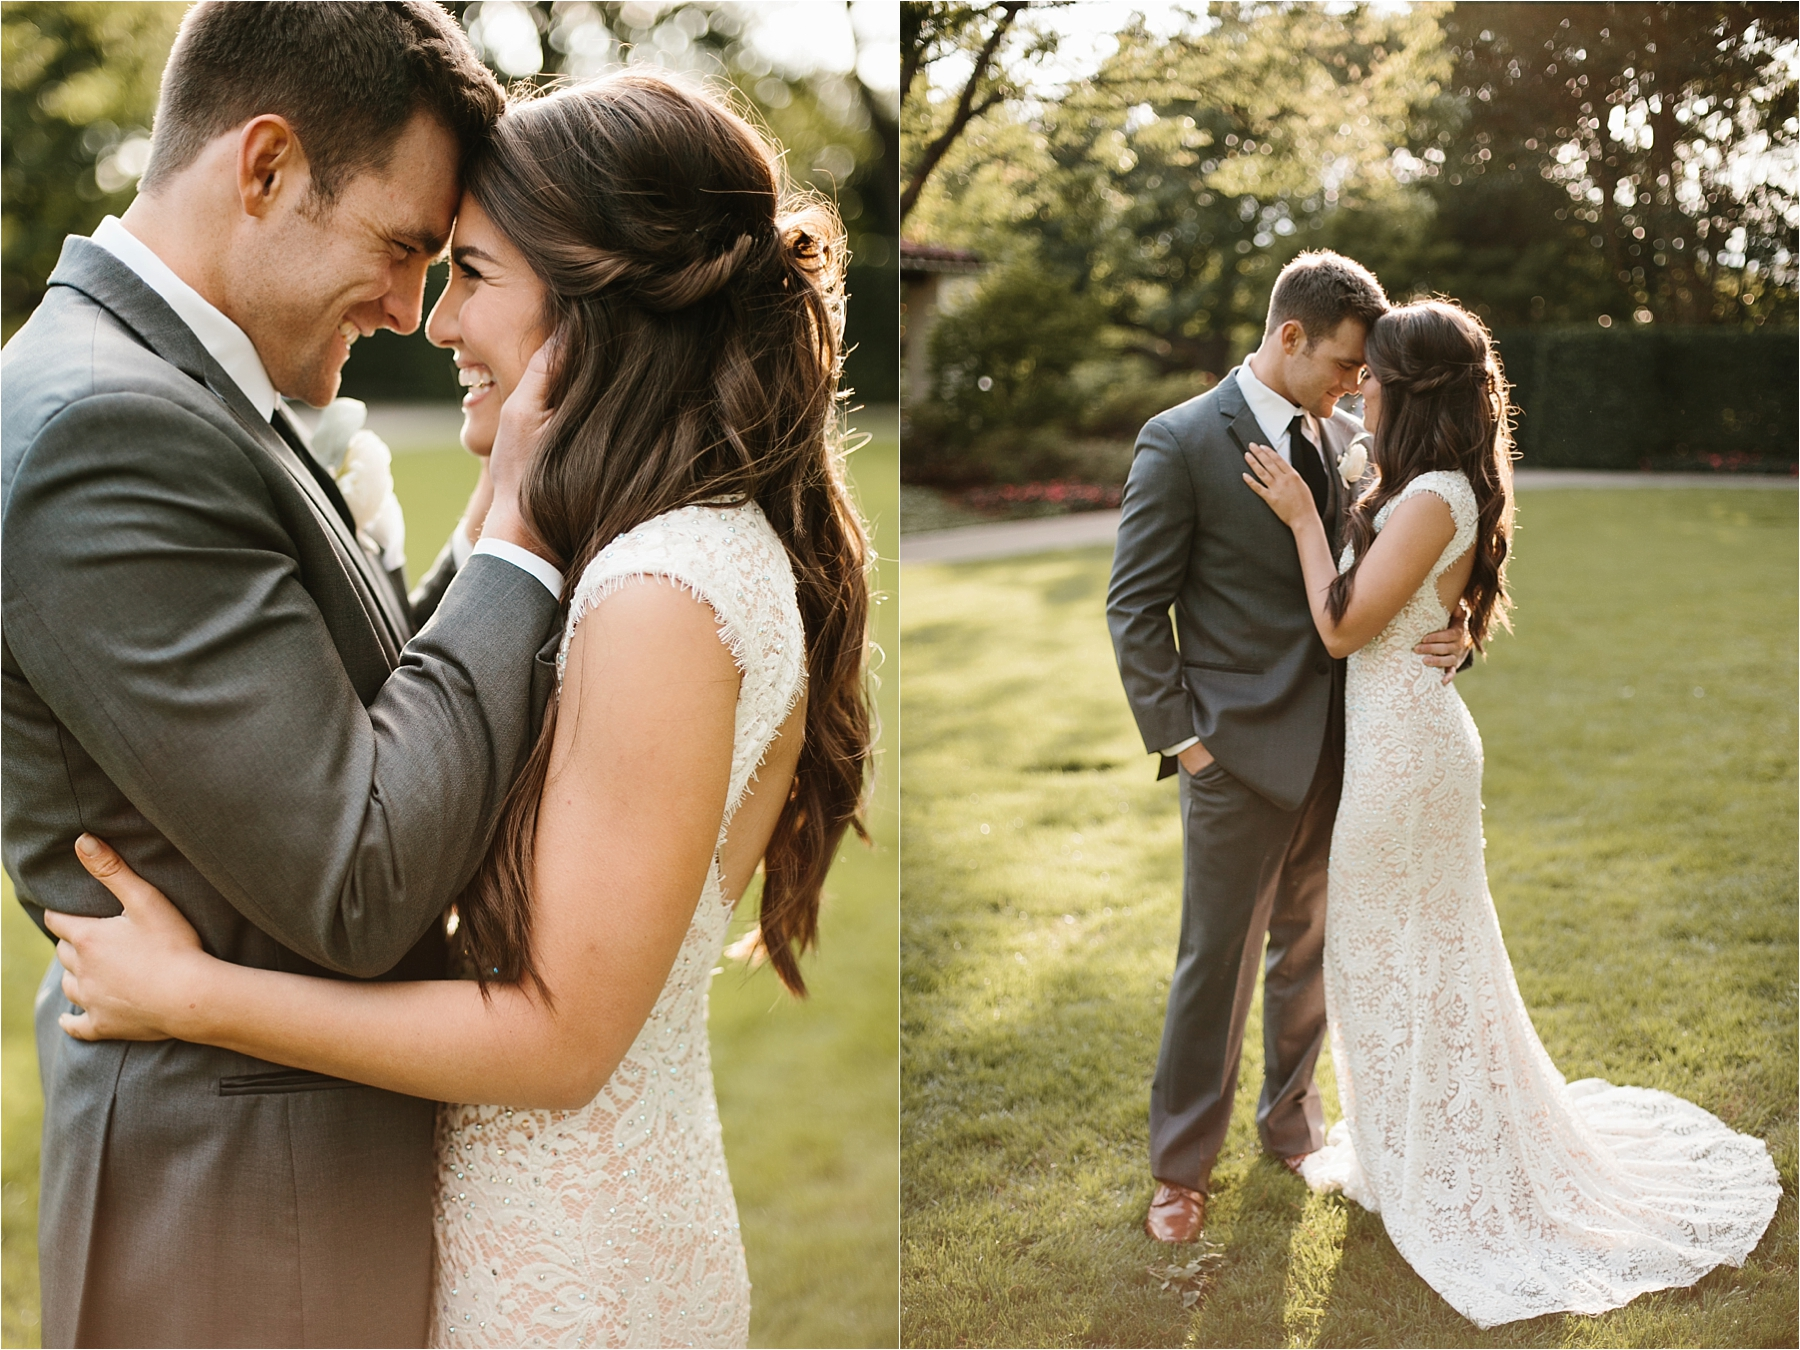 Devyn + Caden __ a Dallas Arboretum Garden Style Wedding by North Texas Wedding Photographer Rachel Meagan Photography __ 079